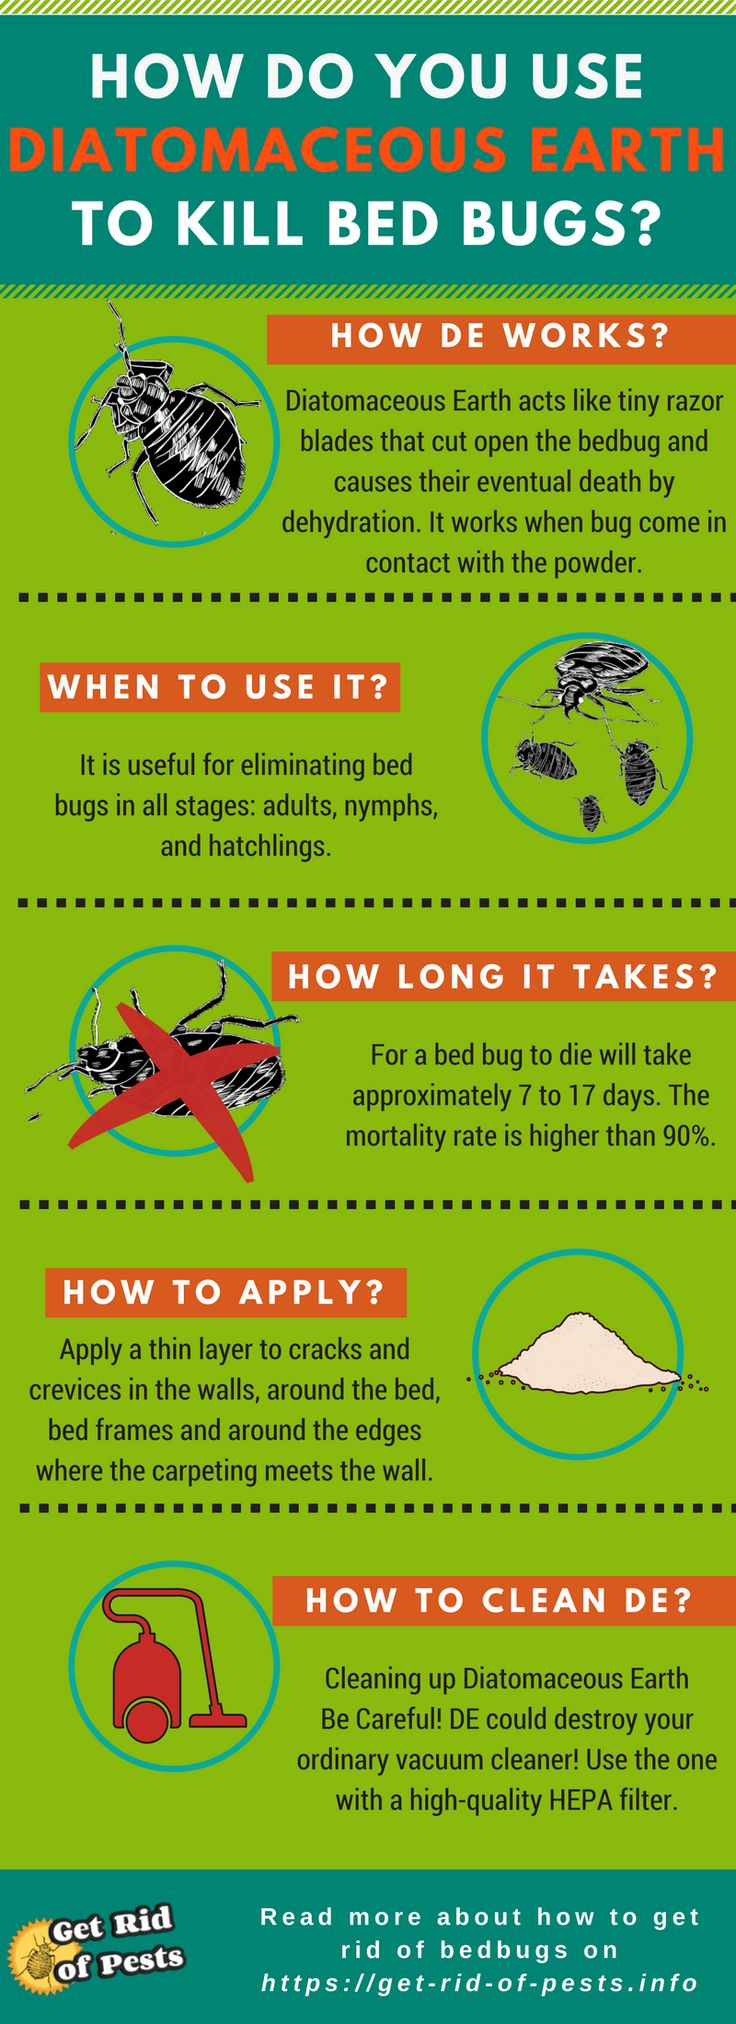 How Do you Use Diatomaceous Earth to Kill Bed Bugs [Step